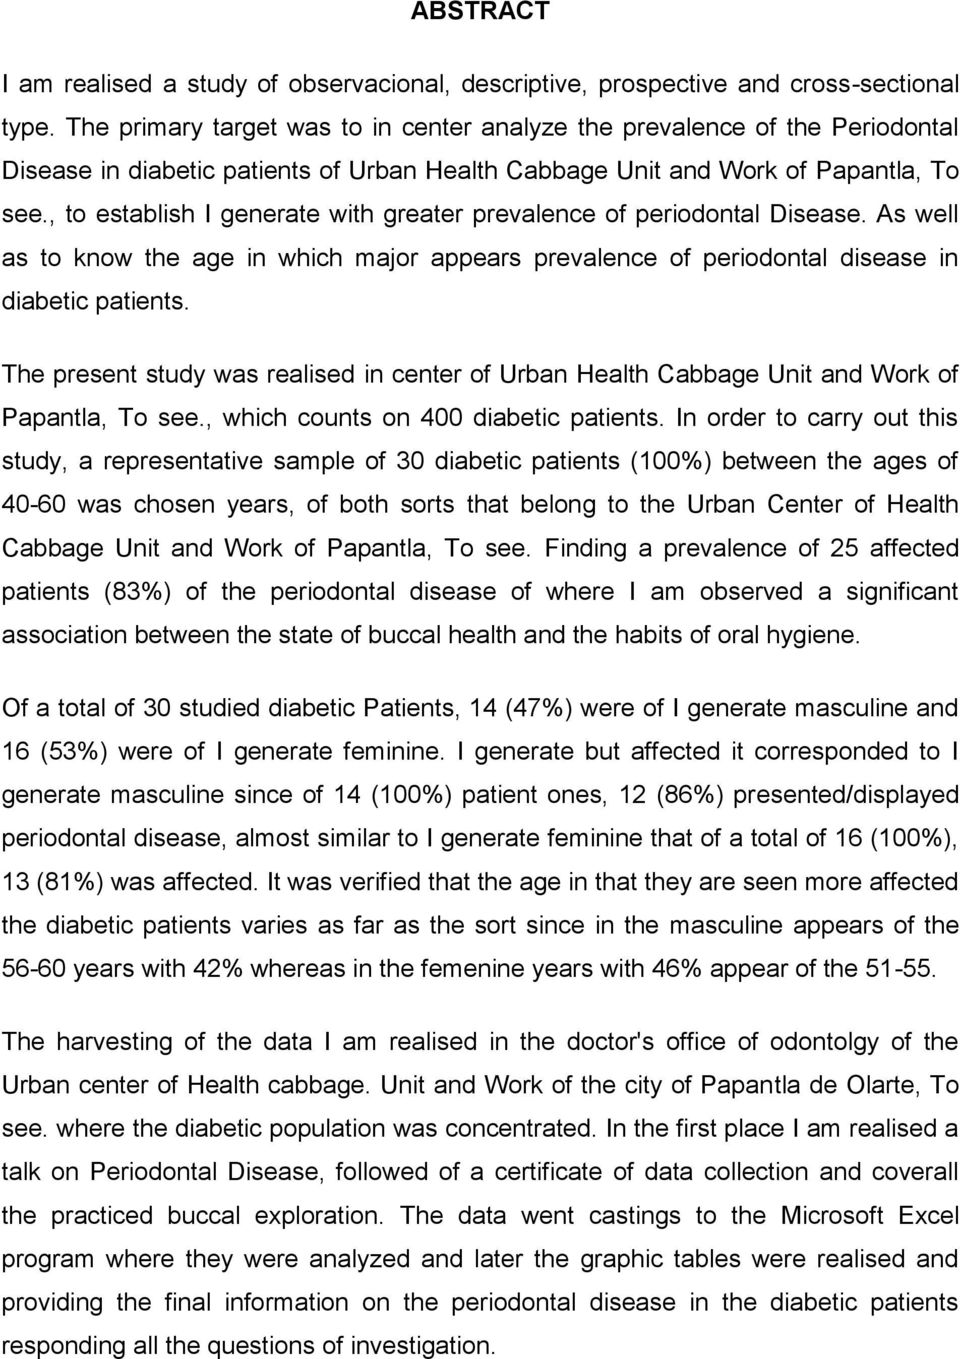 , to establish I generate with greater prevalence of periodontal Disease. As well as to know the age in which major appears prevalence of periodontal disease in diabetic patients.